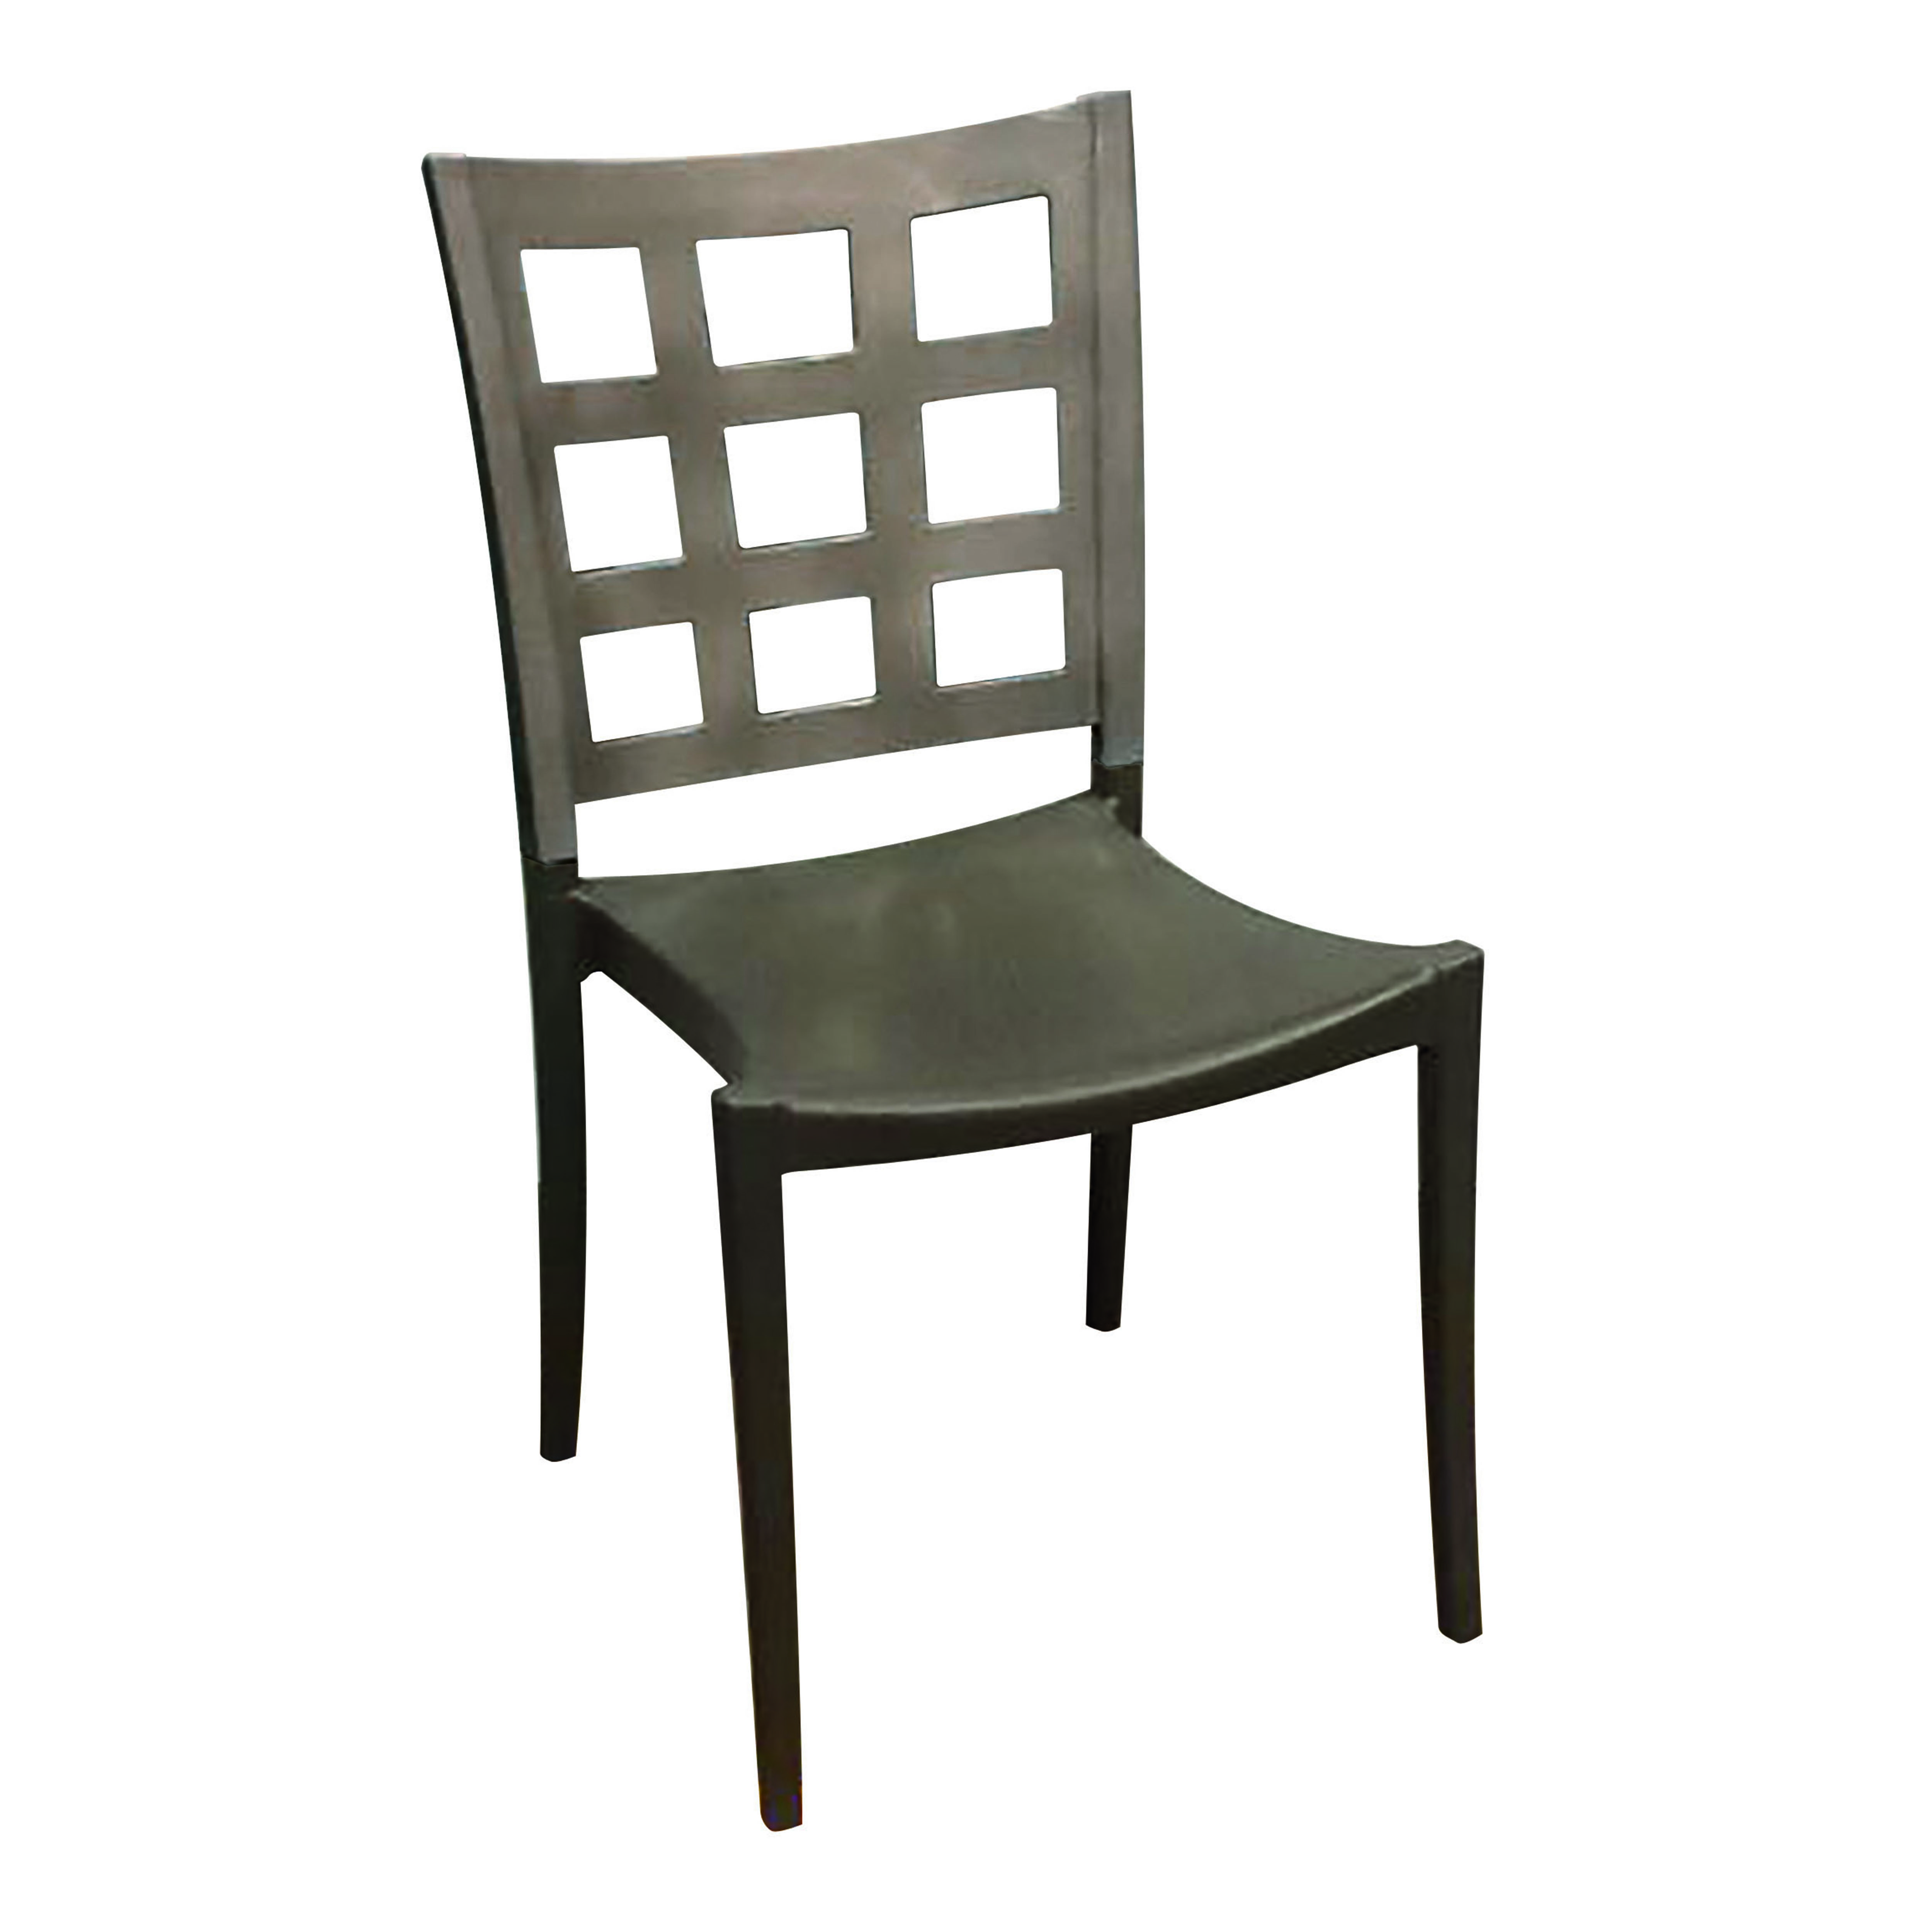 Grosfillex US647579 chair, side, stacking, indoor